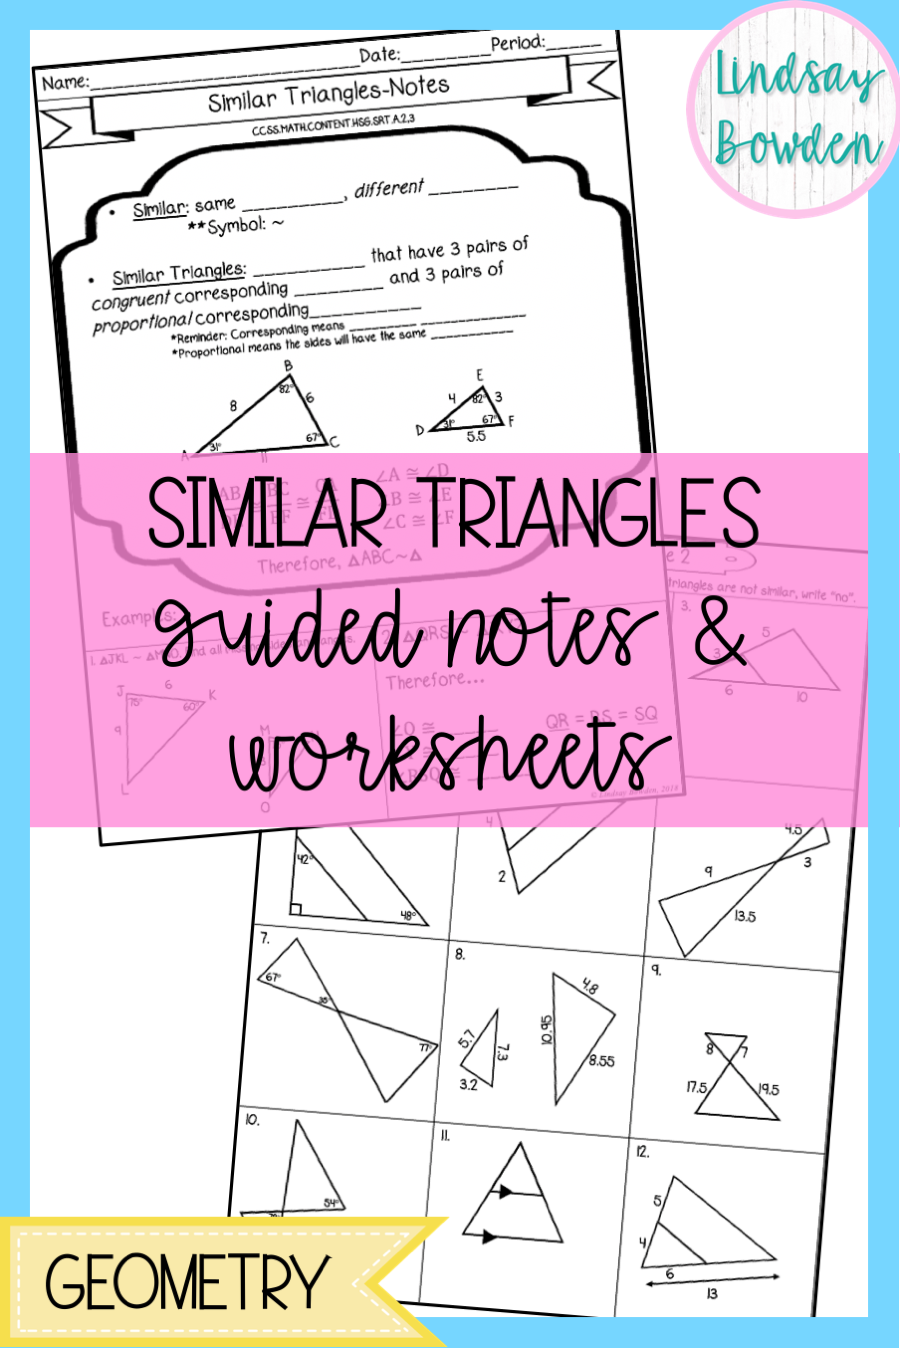 hight resolution of Similar Triangles Notes and Worksheets   Similar triangles